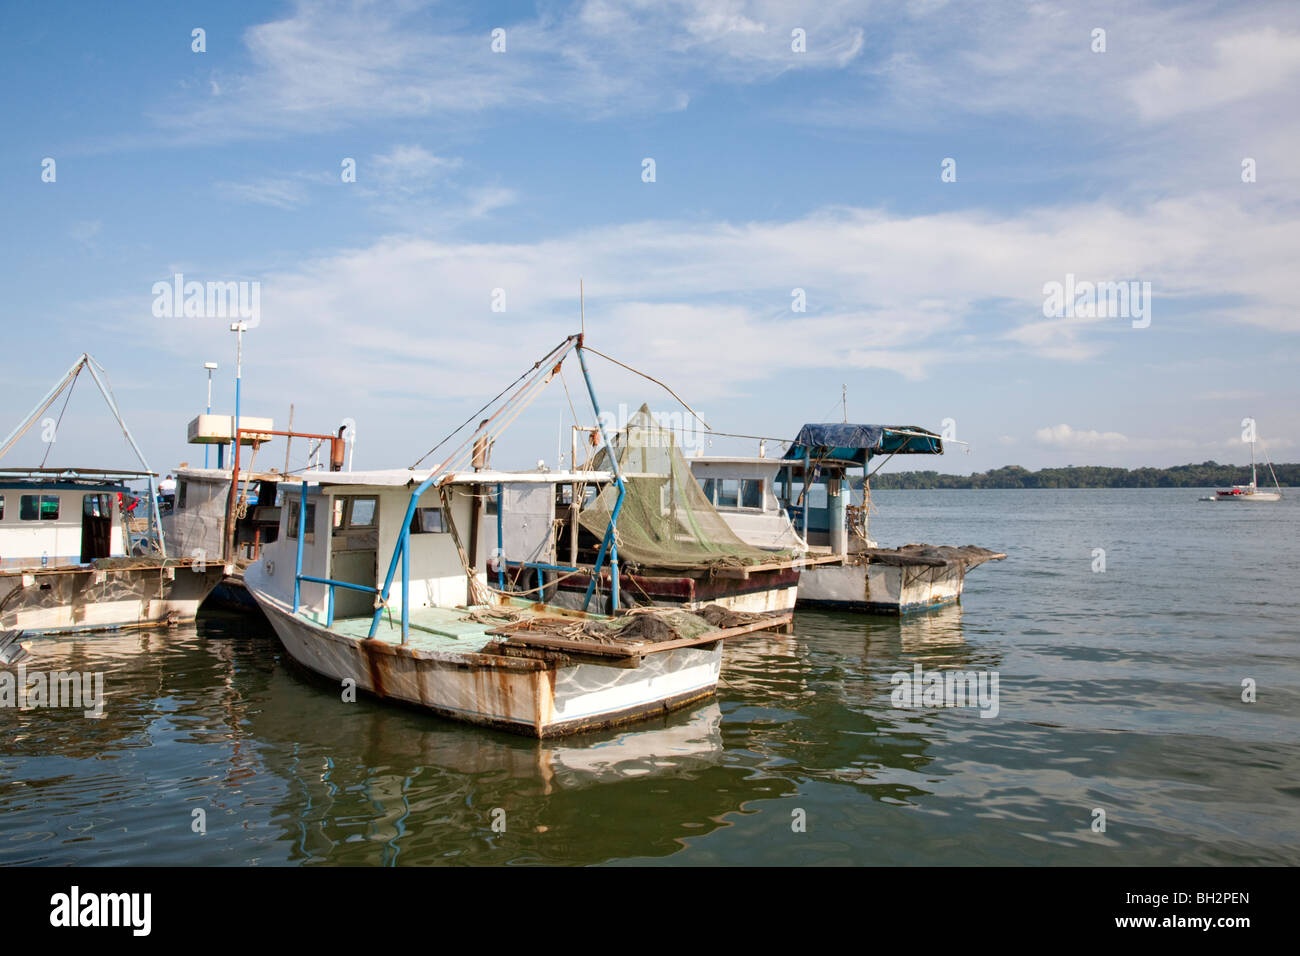 Caribbean Sea, Livingston, Guatemala. - Stock Image